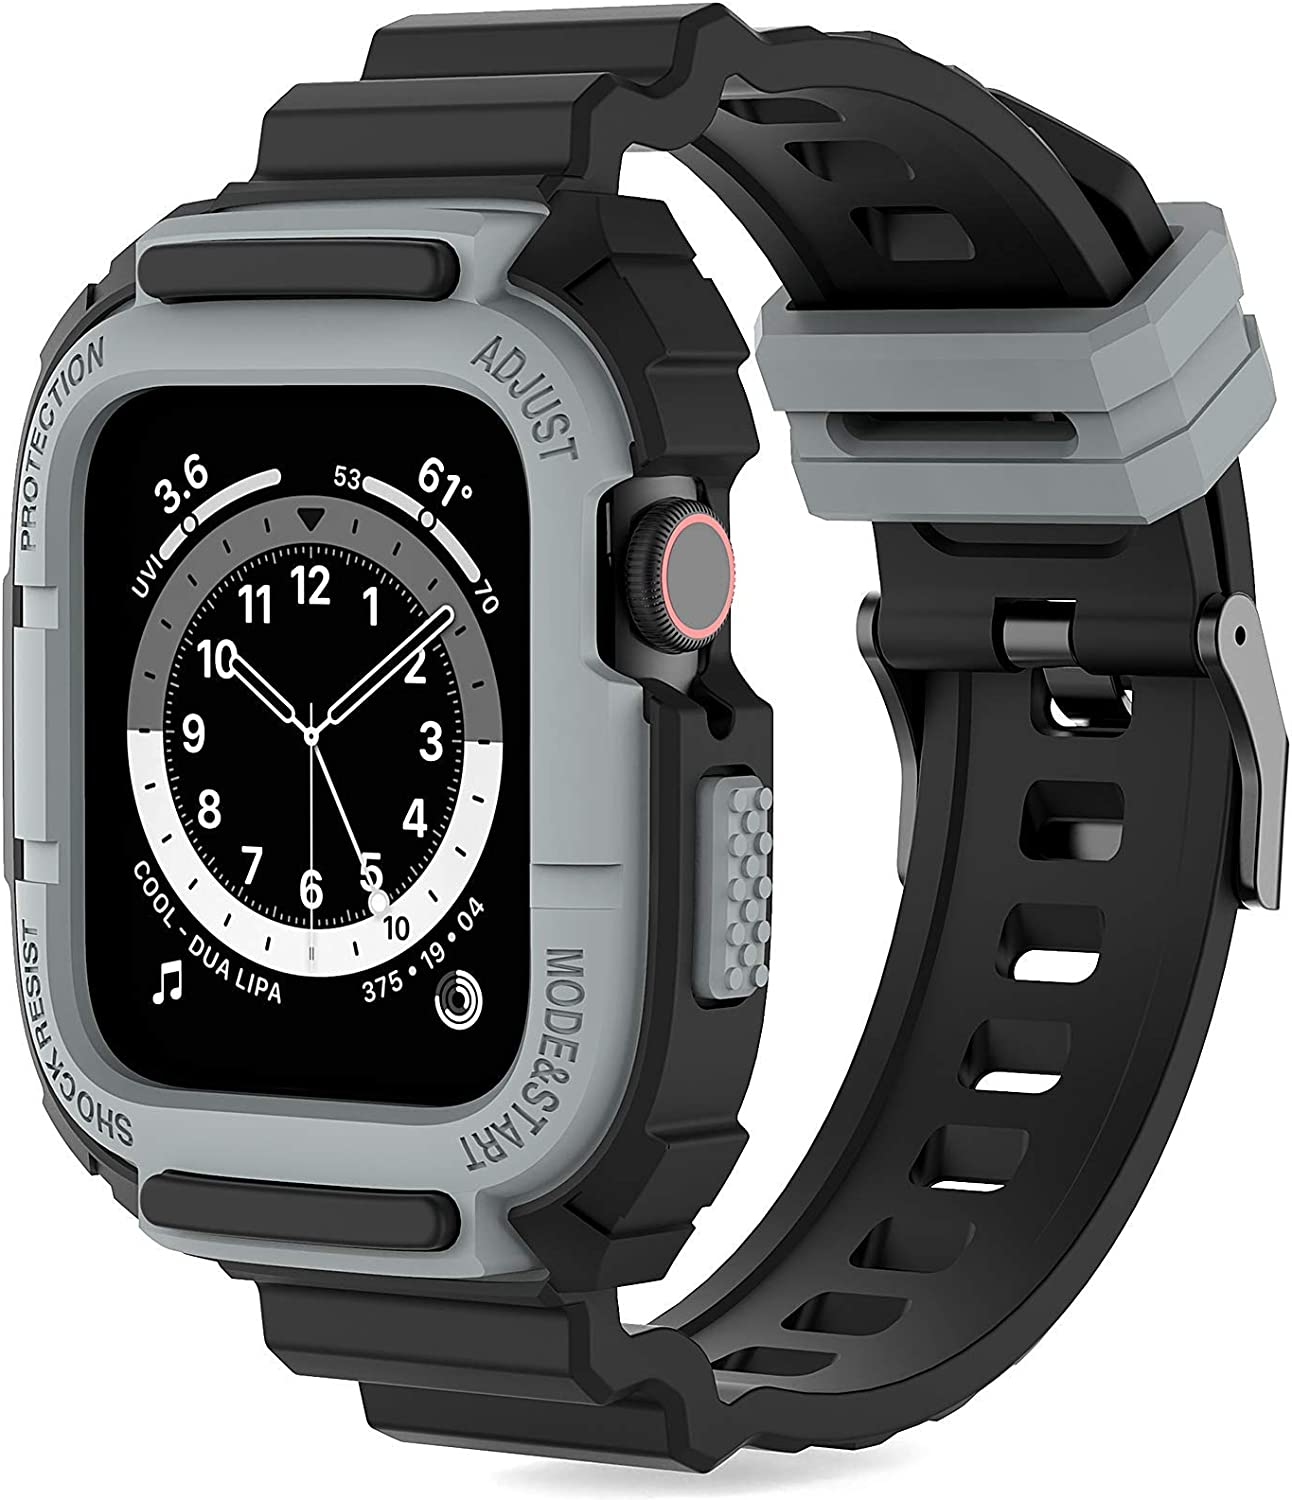 Compatible with Apple Watch Bands With Bumper Case 40mm 38mm,Loxoto Durable Sport Cases with TPU Strap Bands for iWatch Series SE/6/5/4/3/2/1 Men Sport Military Style